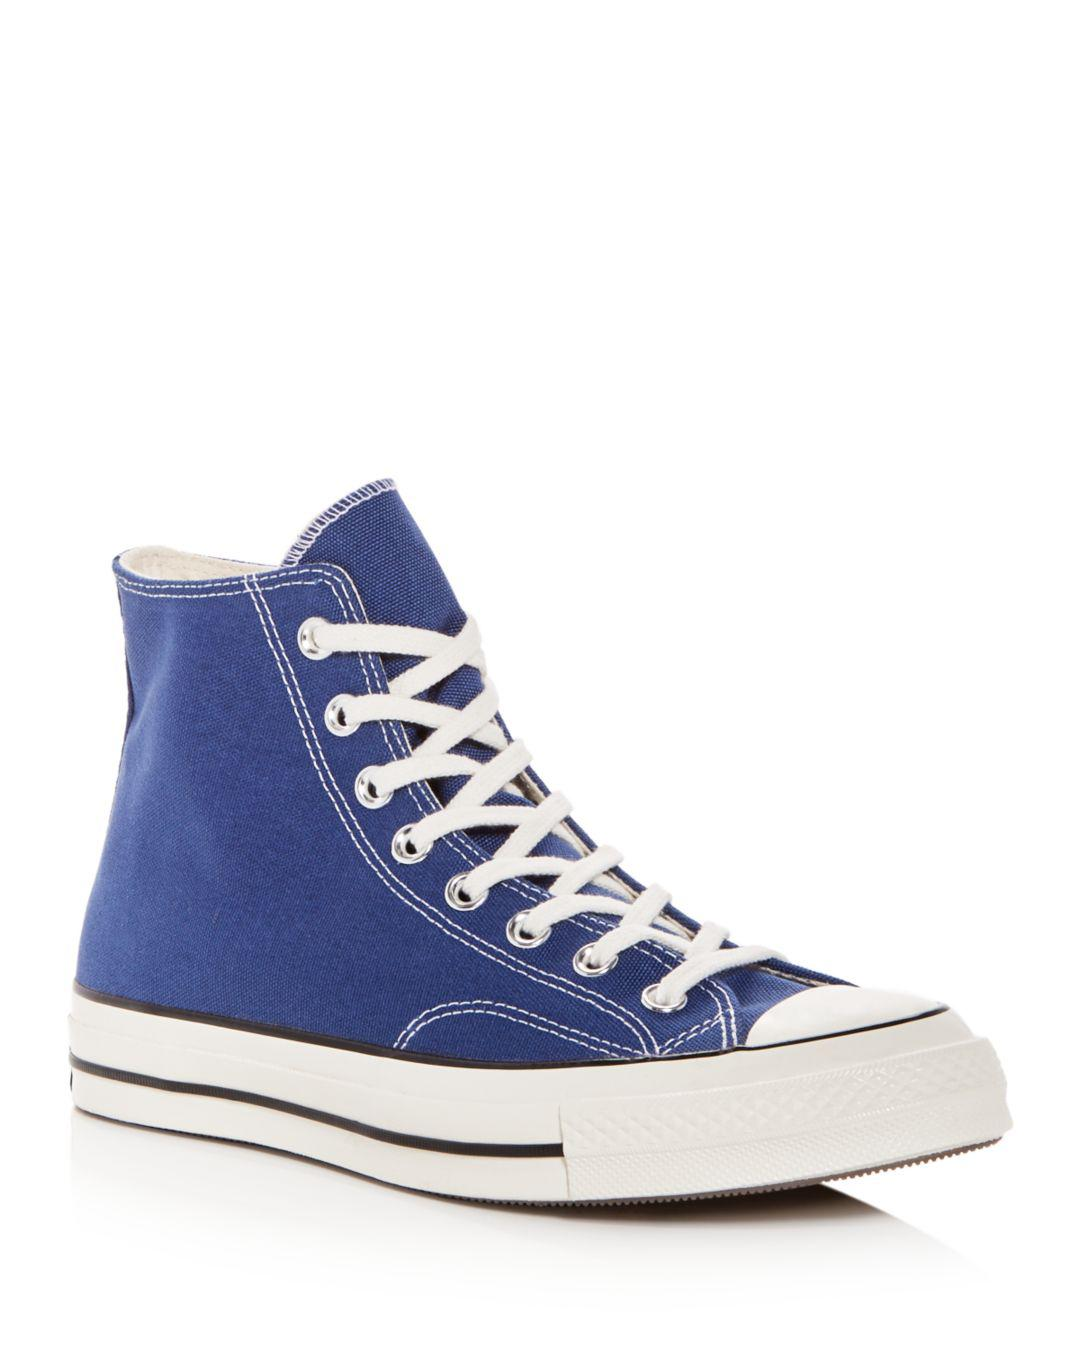 Lyst - Converse Men s Chuck Taylor All Star 70 High-top Sneakers in ... ee9de4bd3